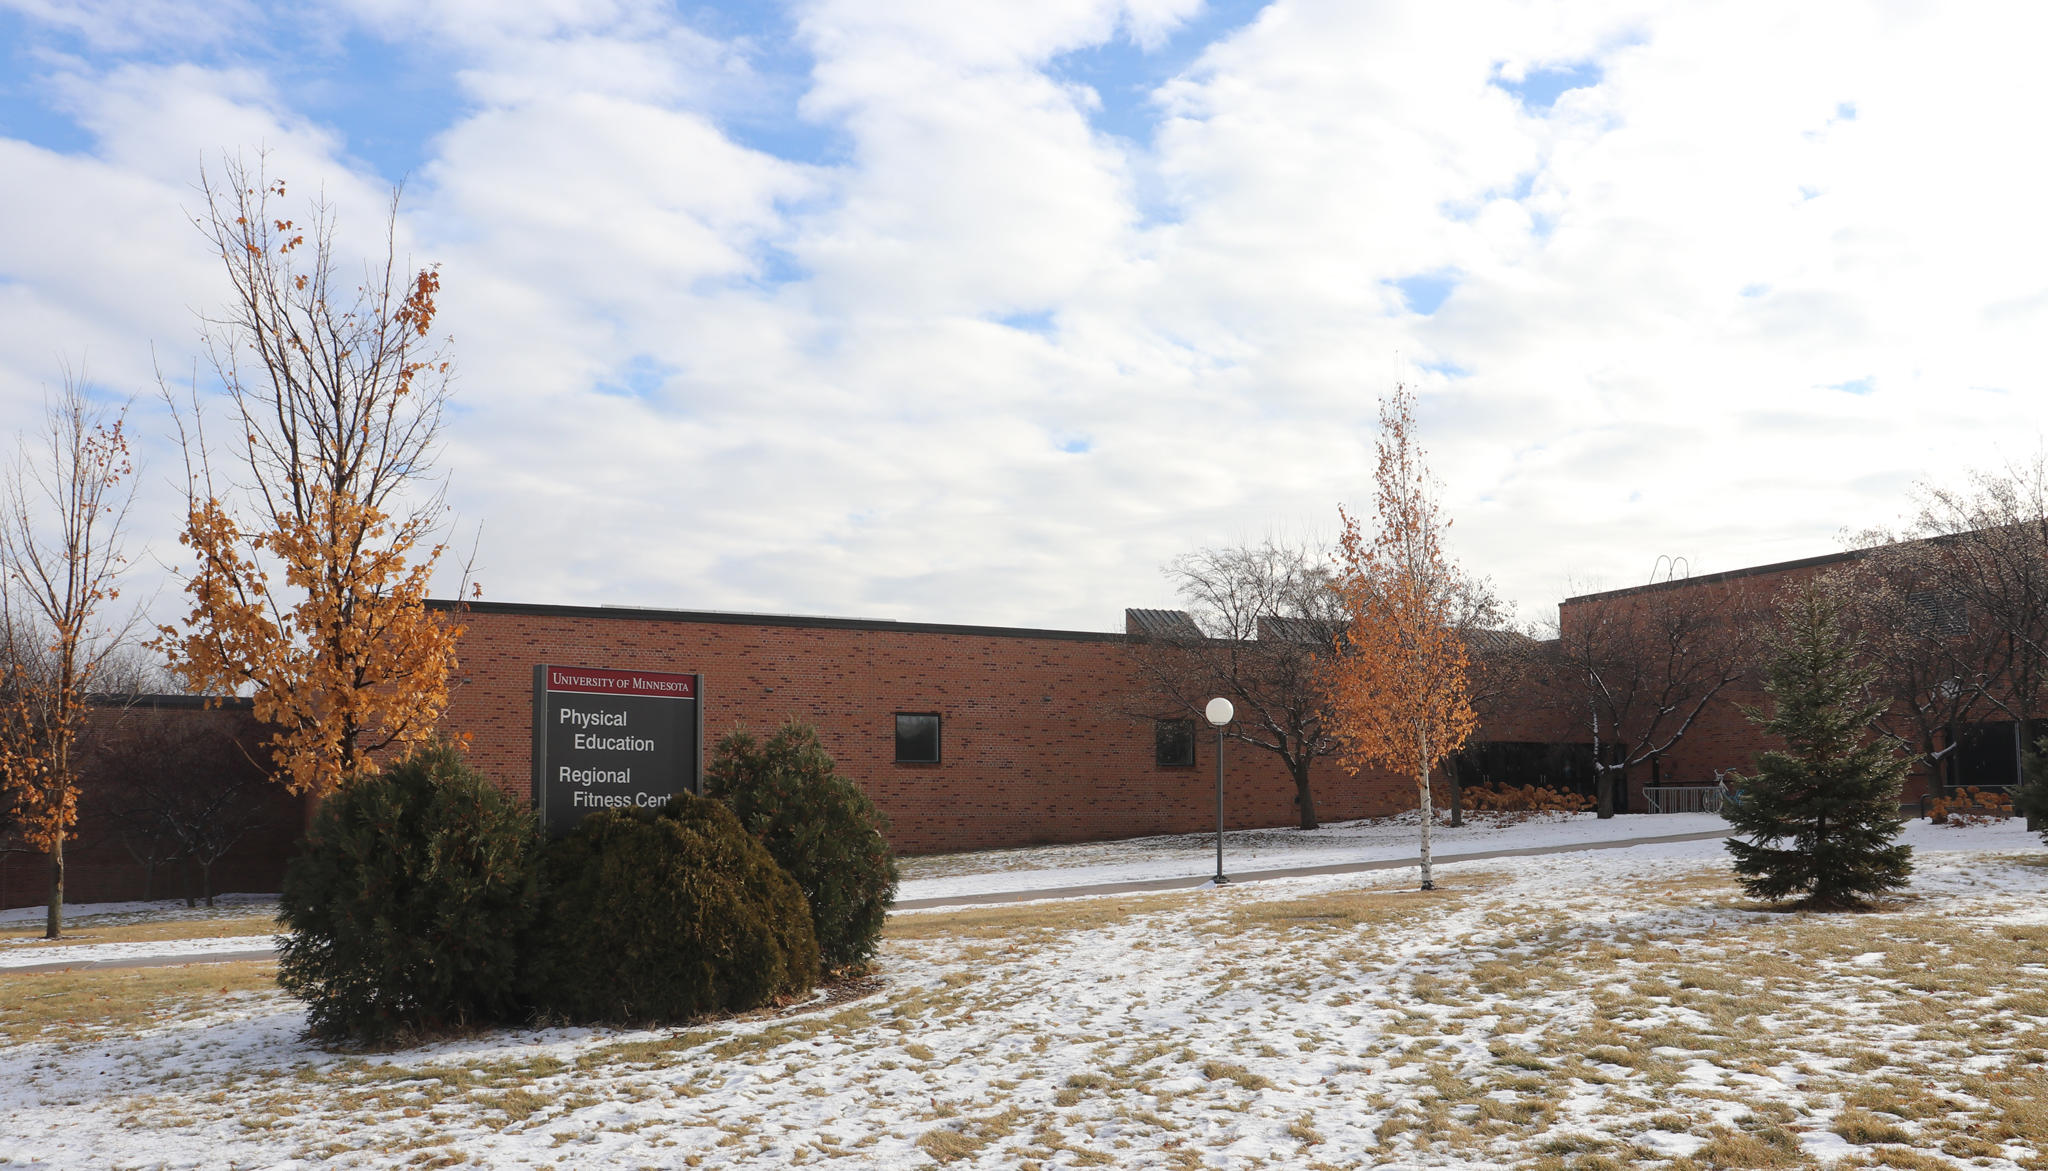 Cougar Sports Center exterior, snow on the ground